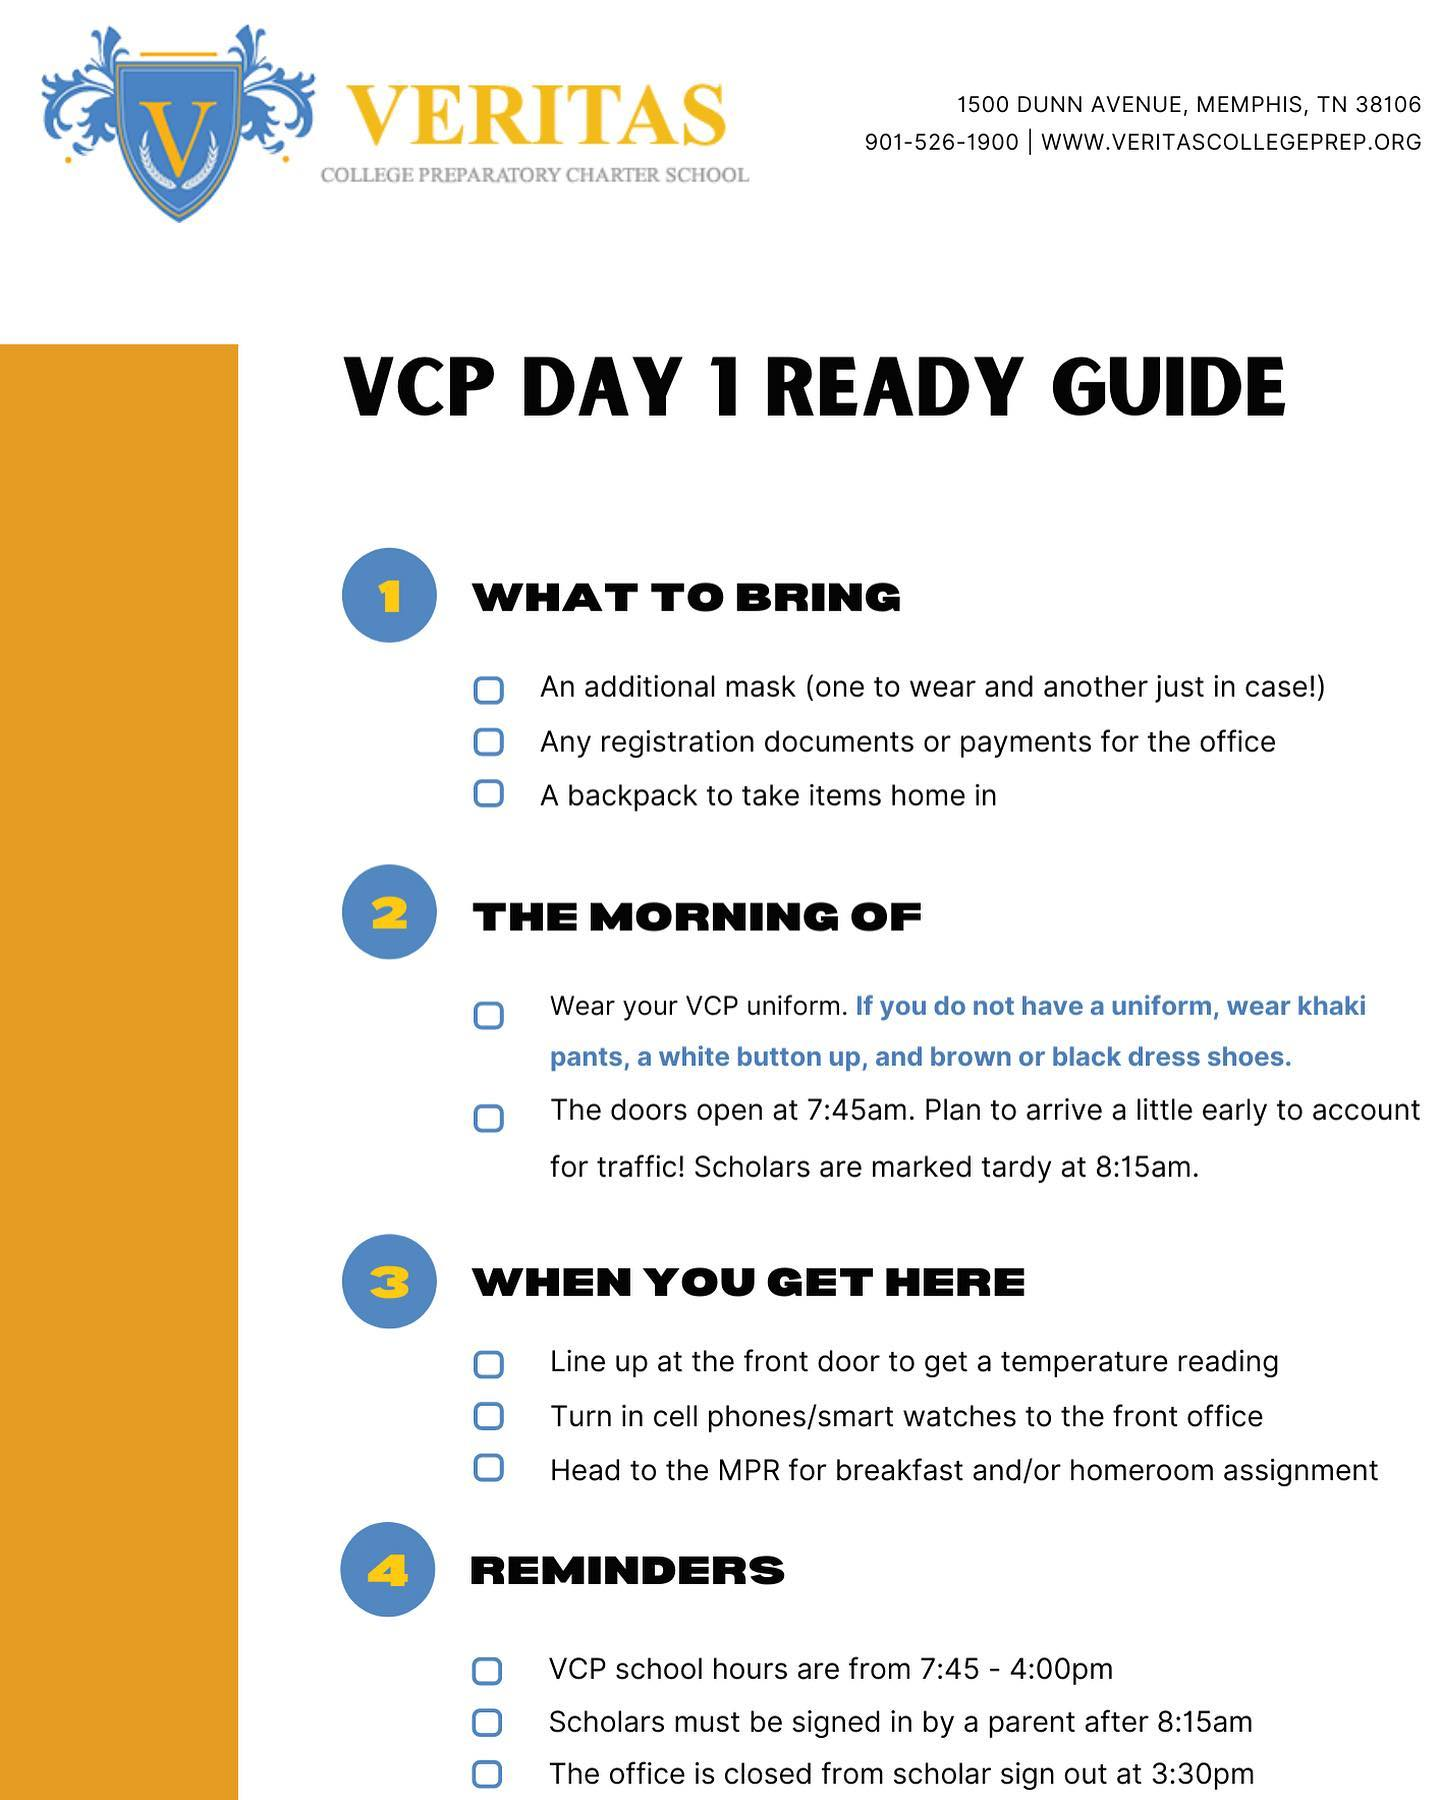 VCP Day 1 Ready Guide